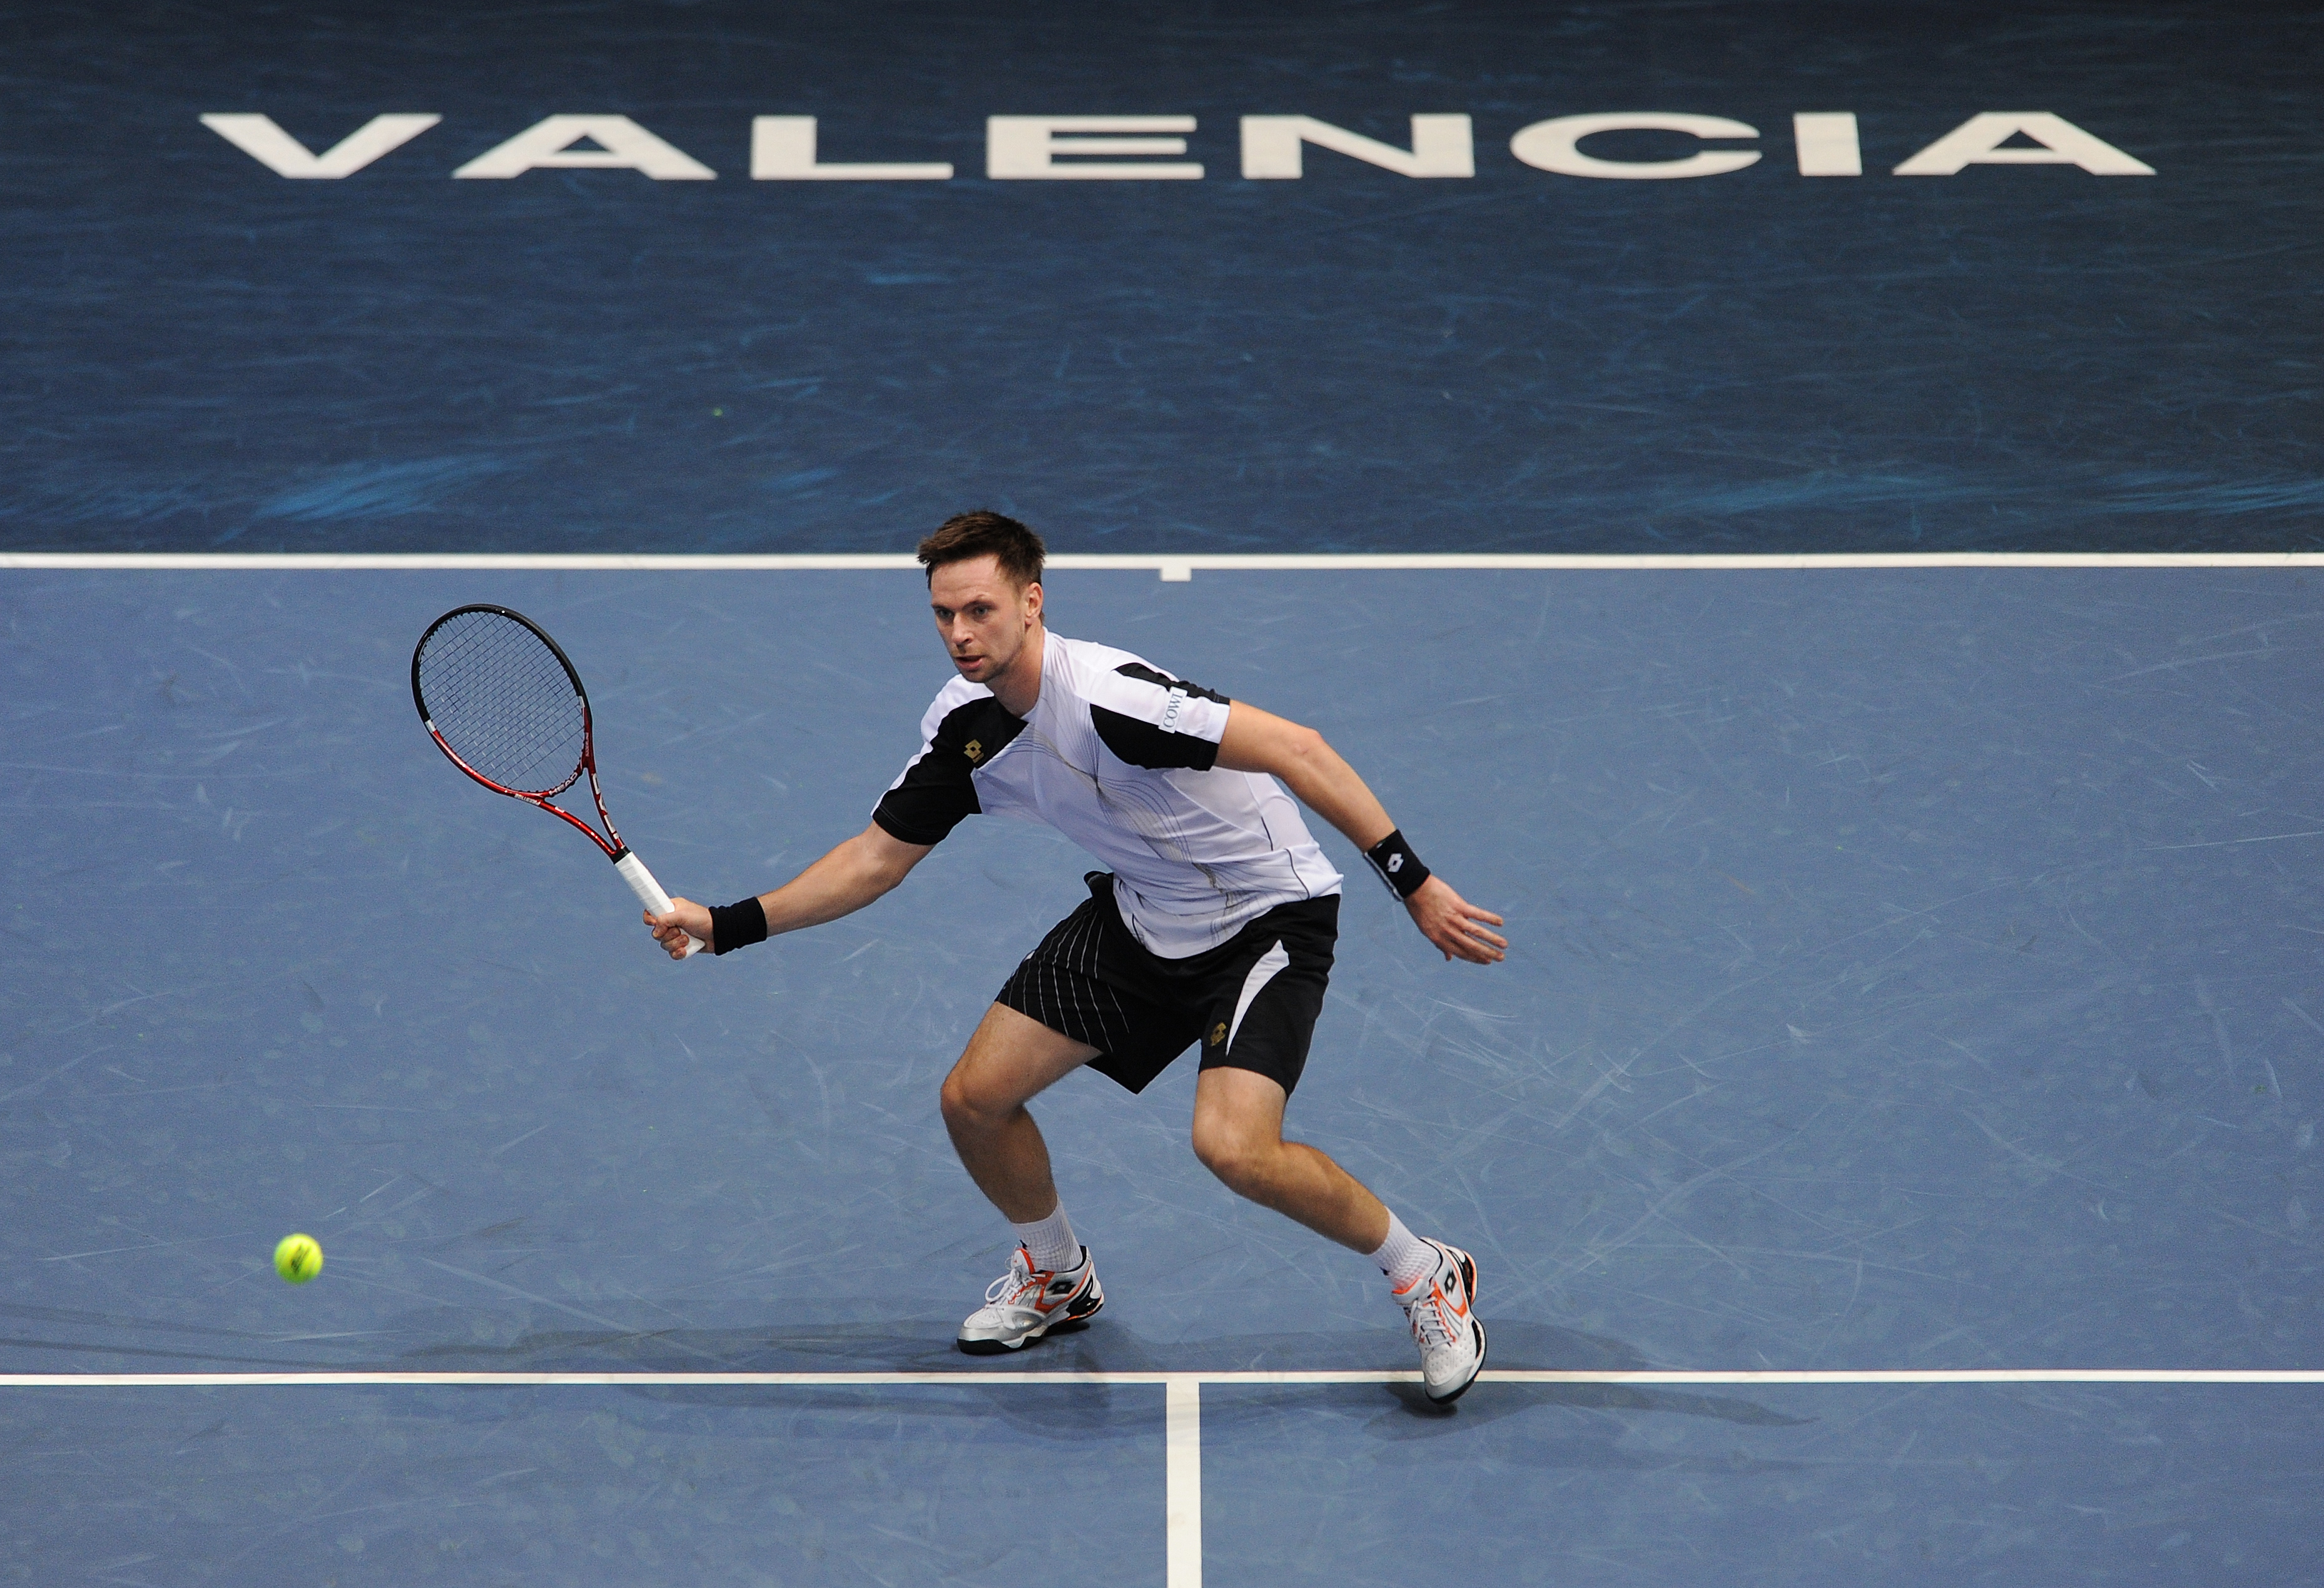 VALENCIA, SPAIN - NOVEMBER 02:  Robin Soderling of Sweden plays a backhand to Albert Montanes of Spain in his first round match during the ATP 500 World Tour Valencia Open tennis tournament at the Ciudad de las Artes y las Ciencias on November 2, 2010 in